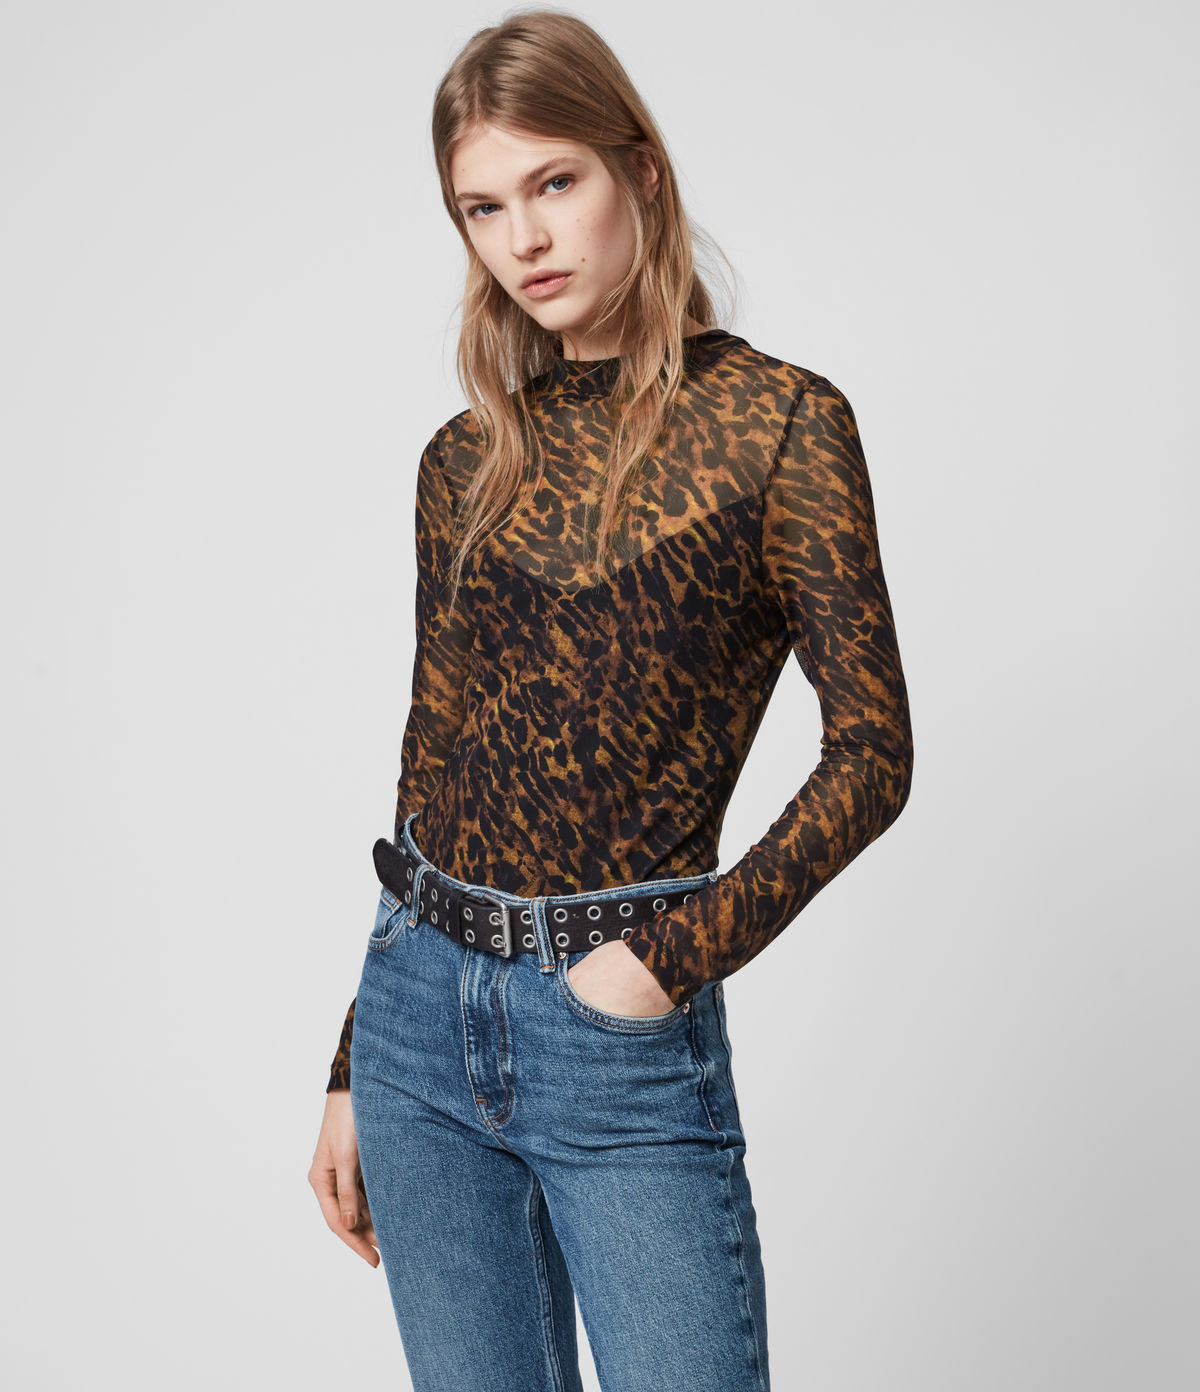 model wearing a cheetah print sheer bodysuit over a cami and tucked into jeans